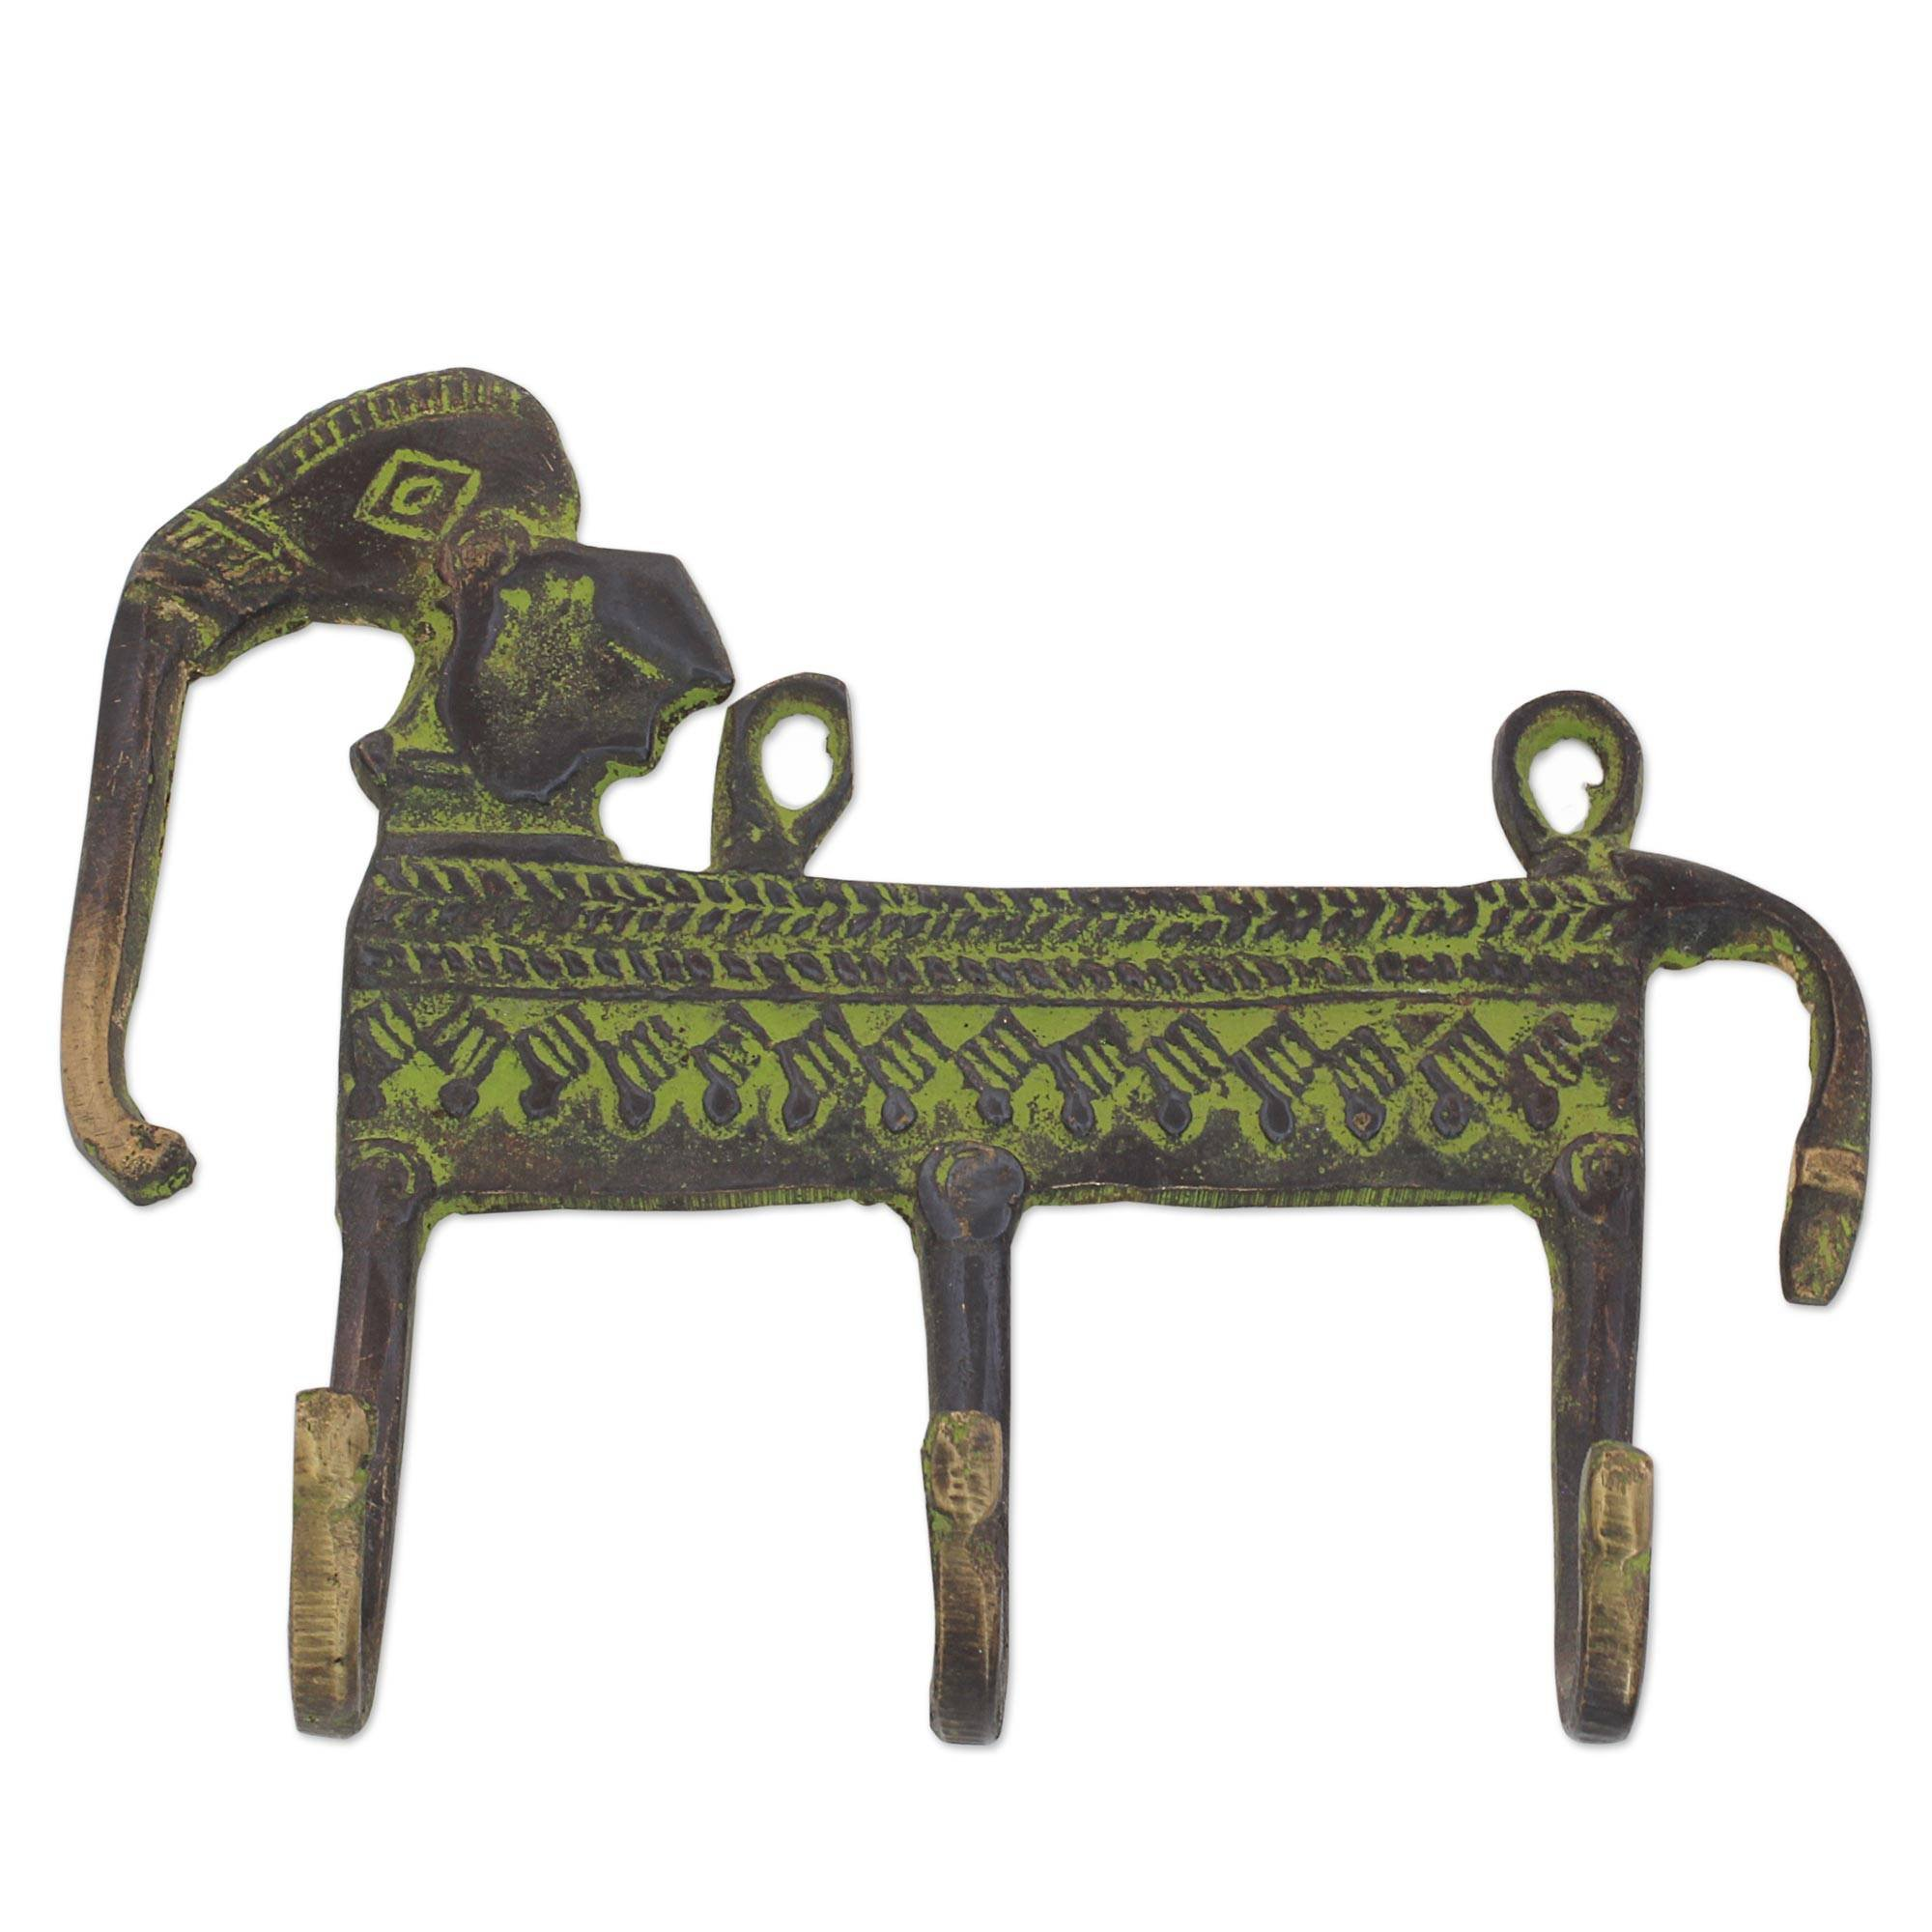 NOVICA Animal Themed Metallic Brass Wall Mounted Coat Hanger, Green, Helpful Elephant'